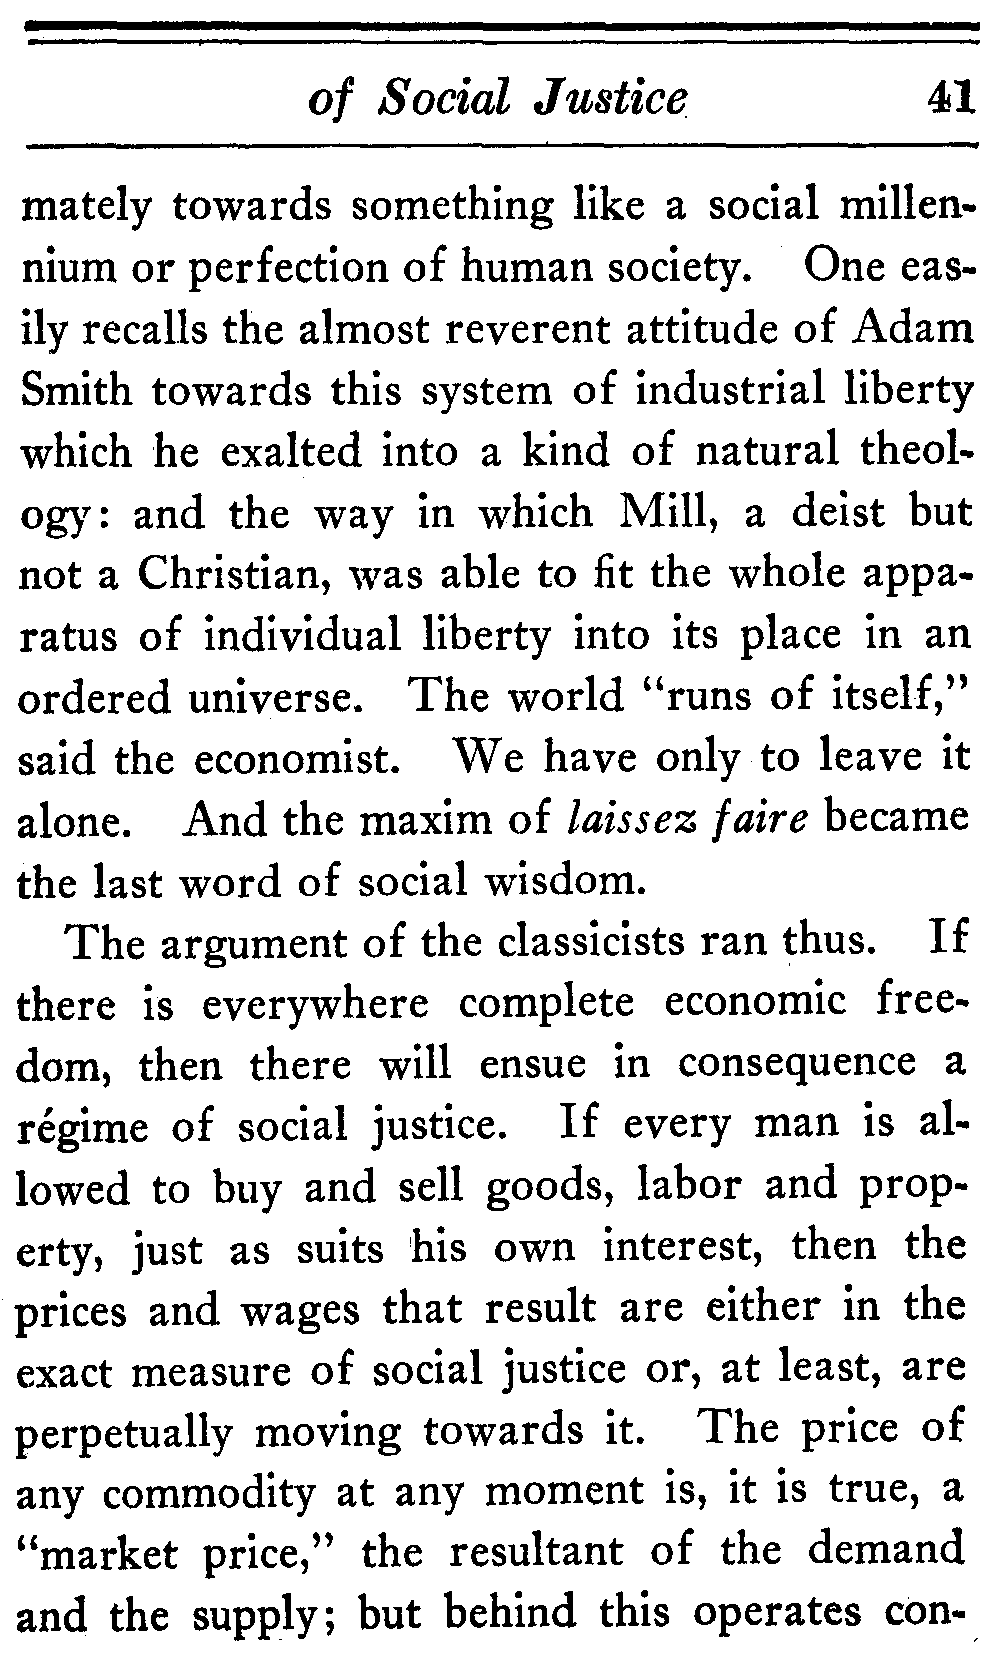 the project ebook of the unsolved riddle of social one easily recalls the almost reverent attitude of adam smith towards this system of industrial liberty which he exalted into a